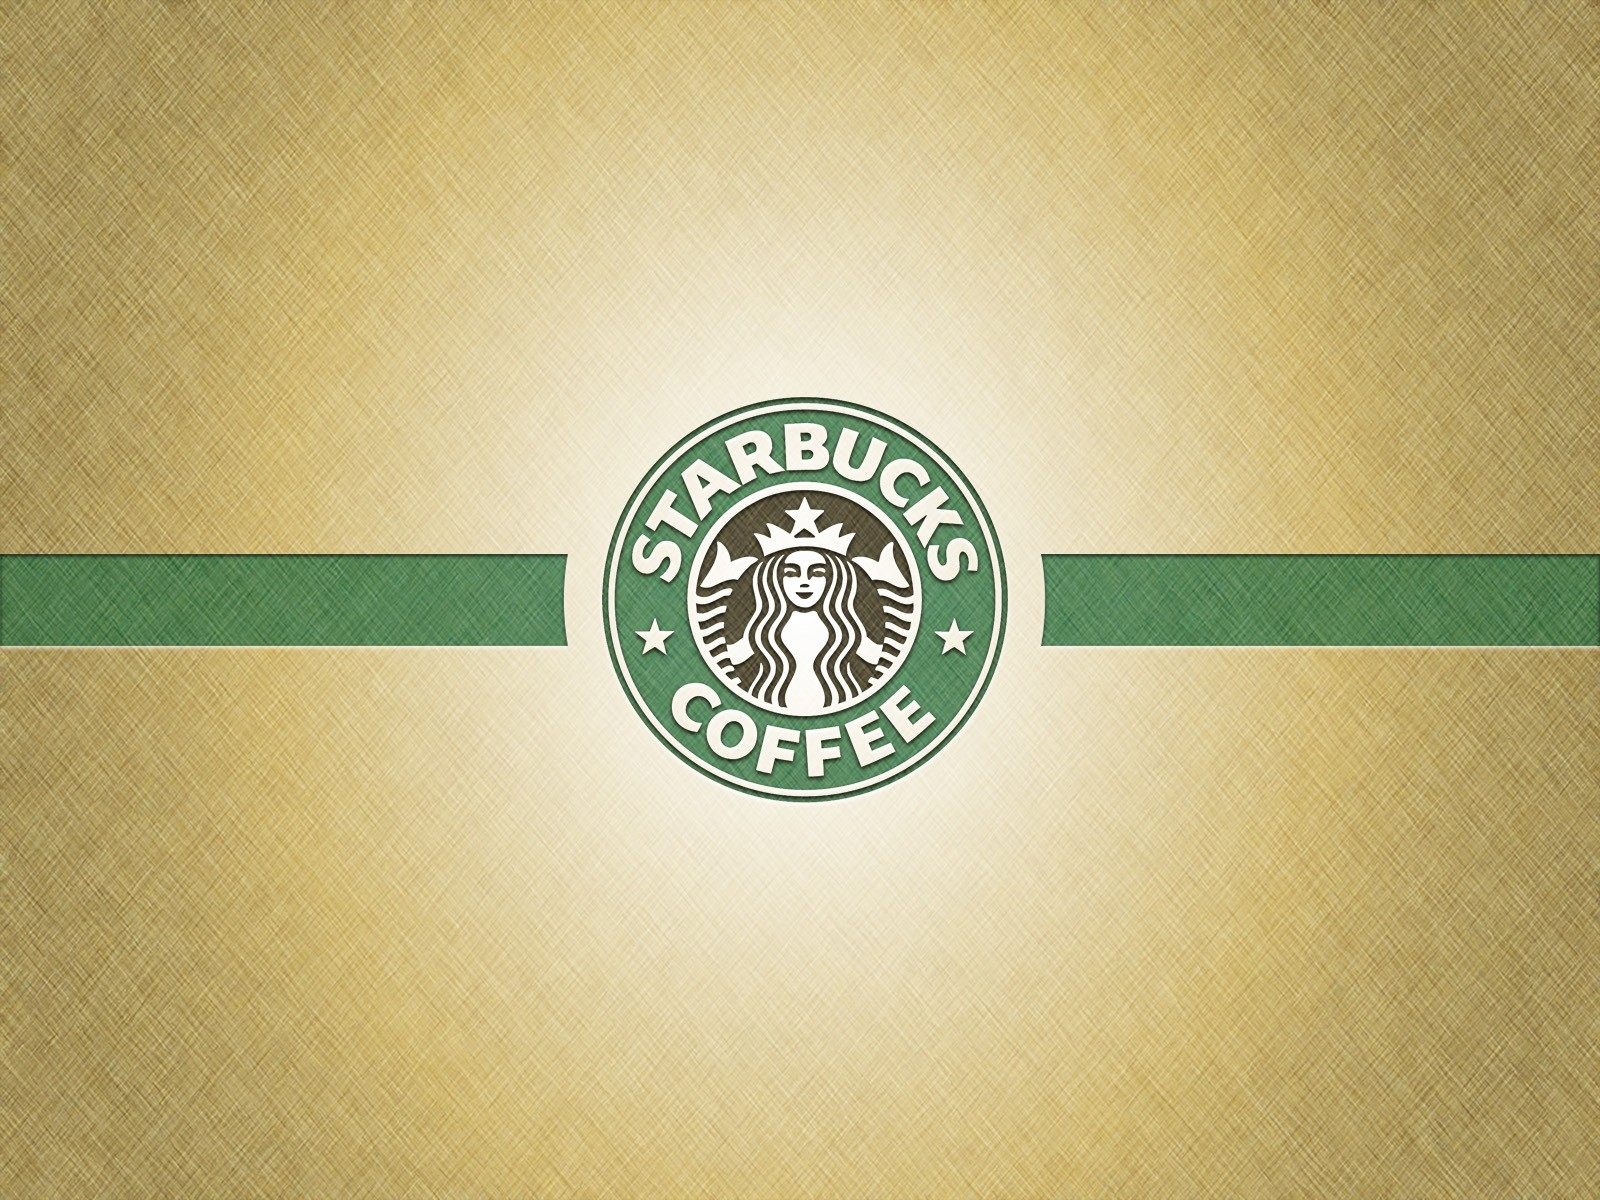 starbucks cultural web Just as starbucks created demand for its coffee, it can very well enjoy even greater success with tea in china.